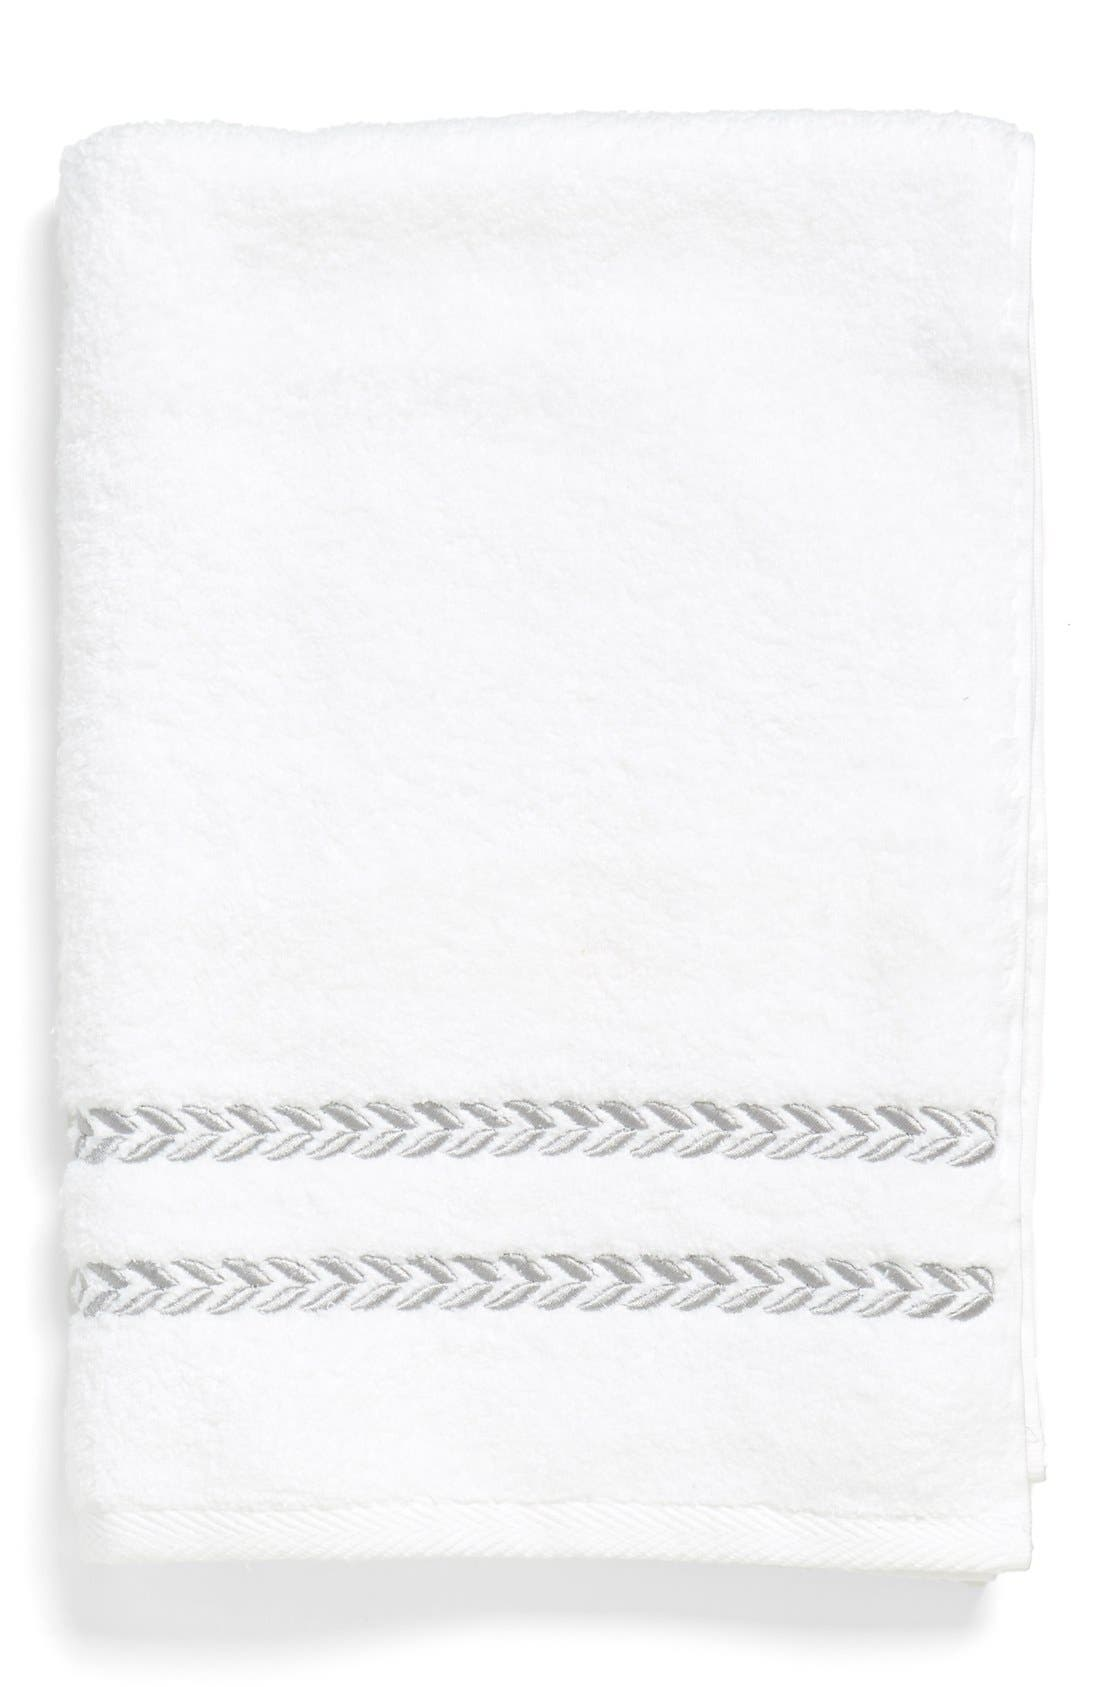 Alternate Image 1 Selected - Dena Home 'Pearl Essence' Hand Towel